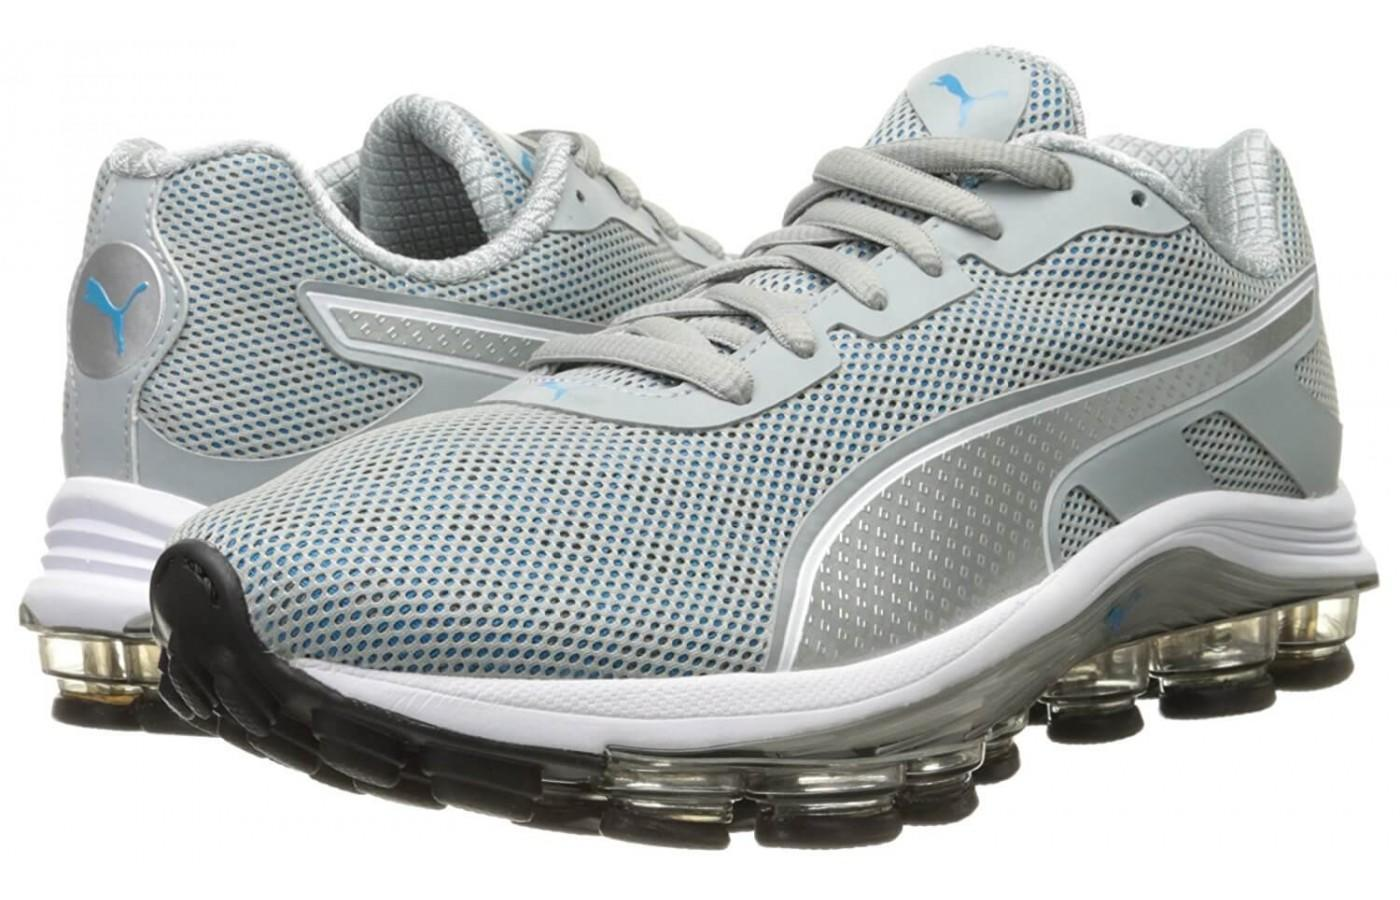 a pair of Puma Voltage trainers